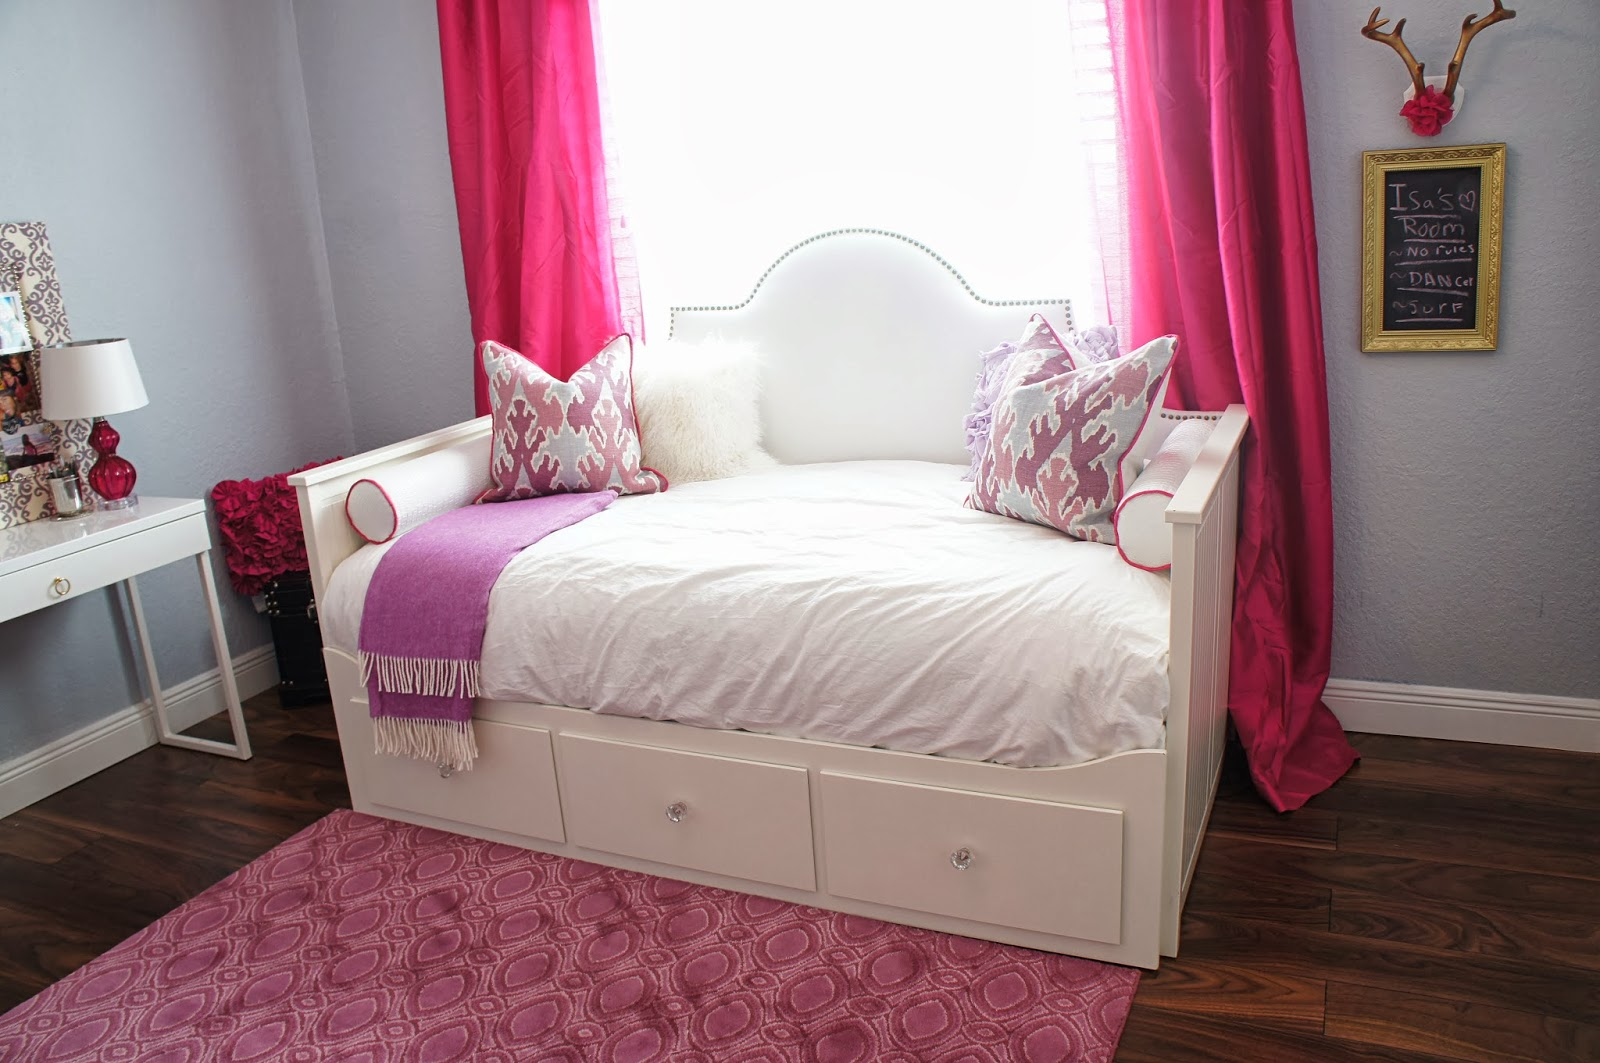 Marvelous Ikea Hemnes Day Bed With Upholstered Headboard DIY